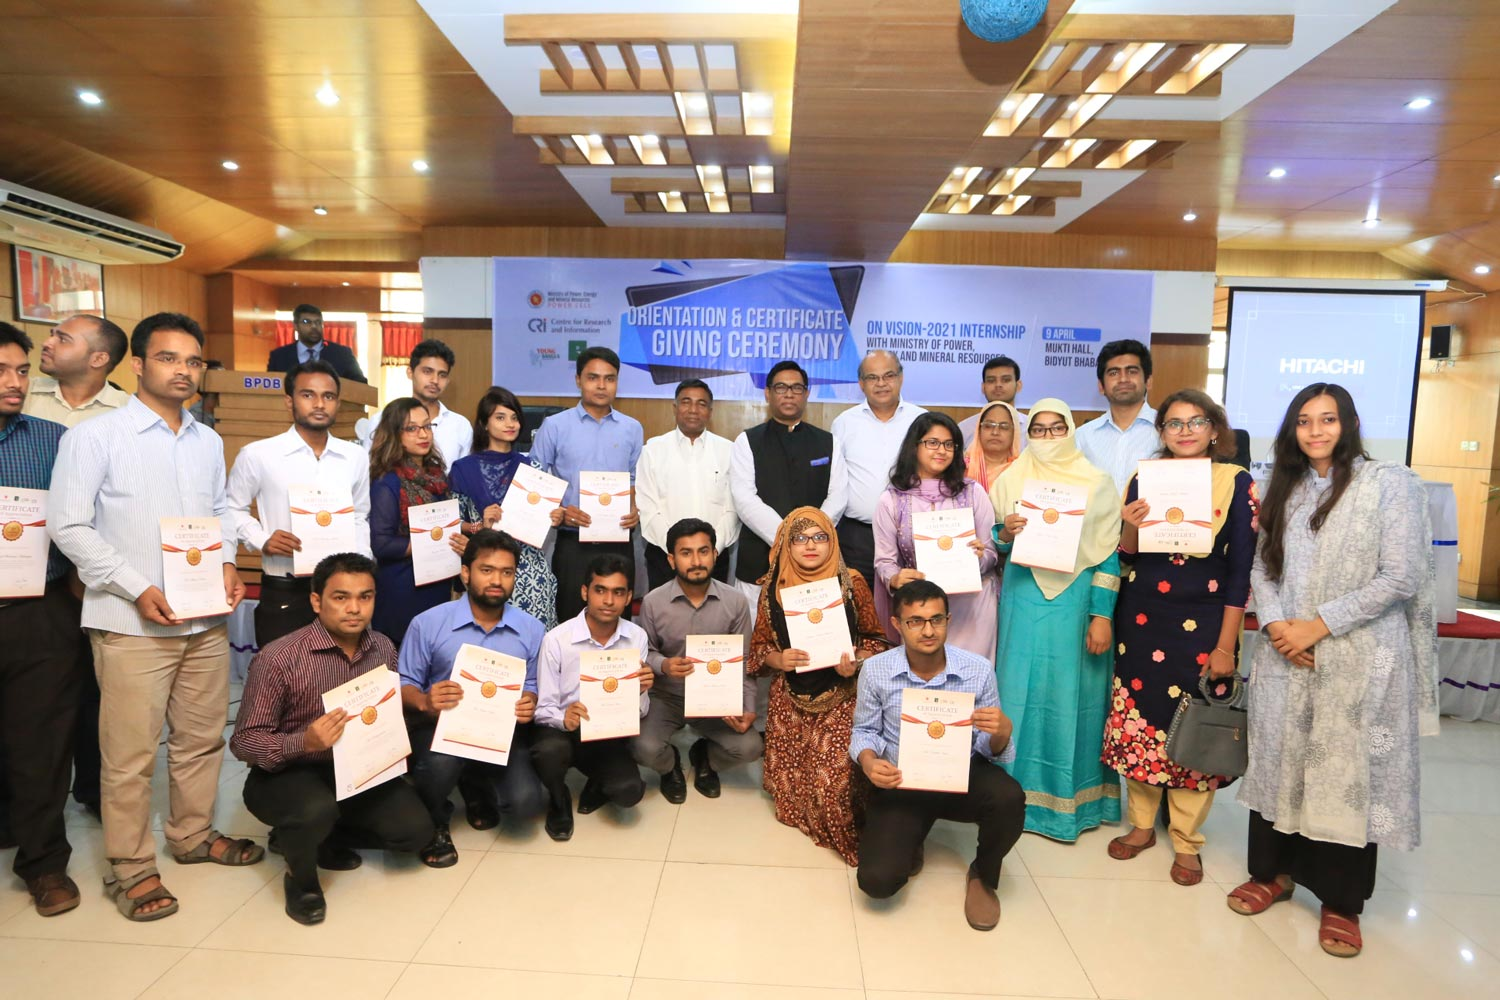 Orientation and Certificate Giving Ceremony of Vision 2021 internship under MoPEMR